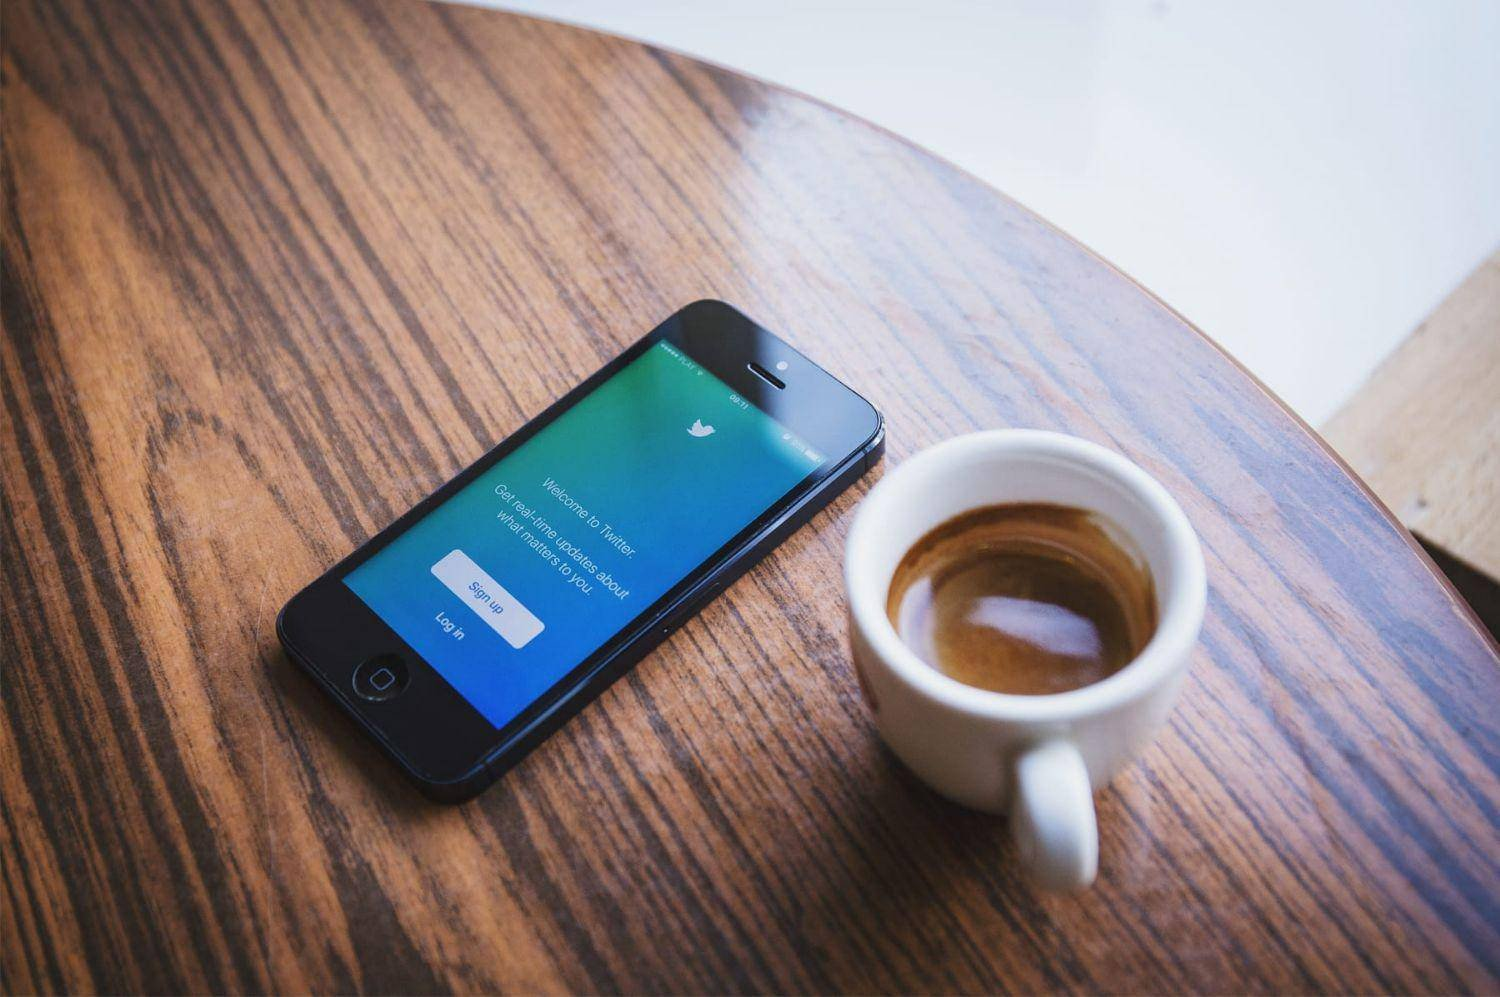 Social Media graphics on a phone with a cup of coffee on table